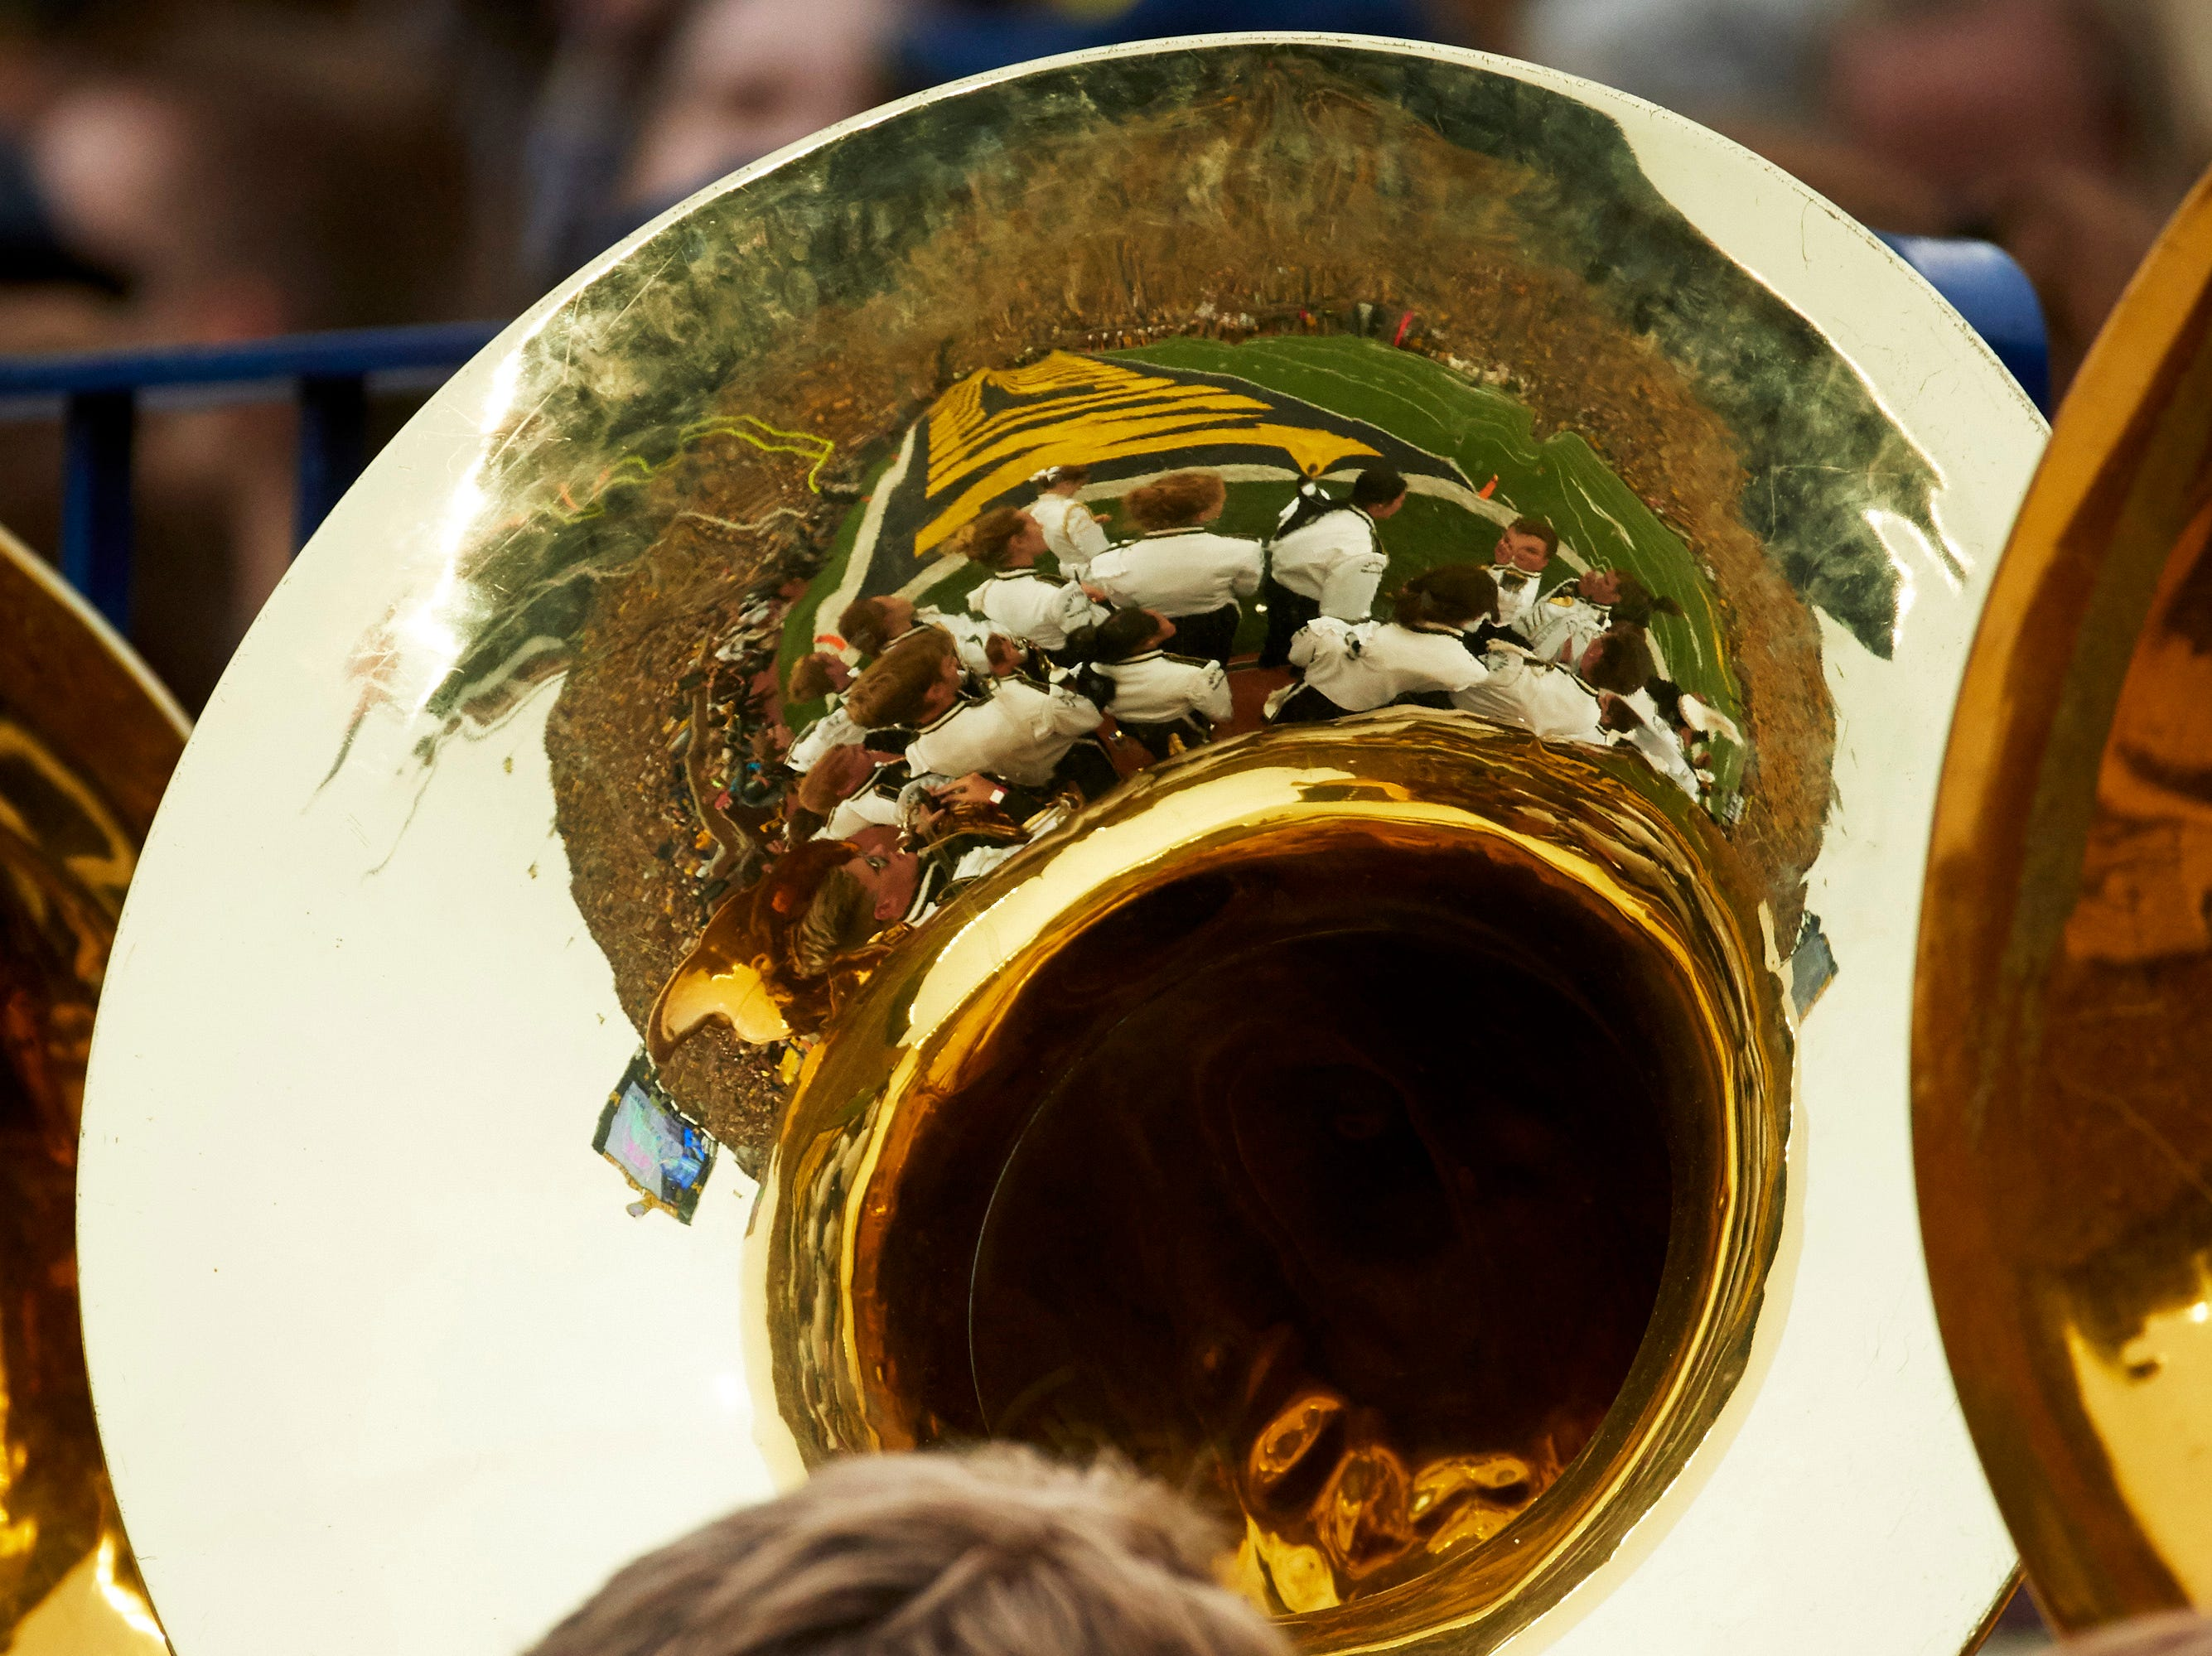 Sep 8, 2018; Ann Arbor, MI, USA; The Western Michigan Broncos band is reflected in a tuba bell on the sideline during a game against the Michigan Wolverines at Michigan Stadium. Mandatory Credit: Rick Osentoski-USA TODAY Sports